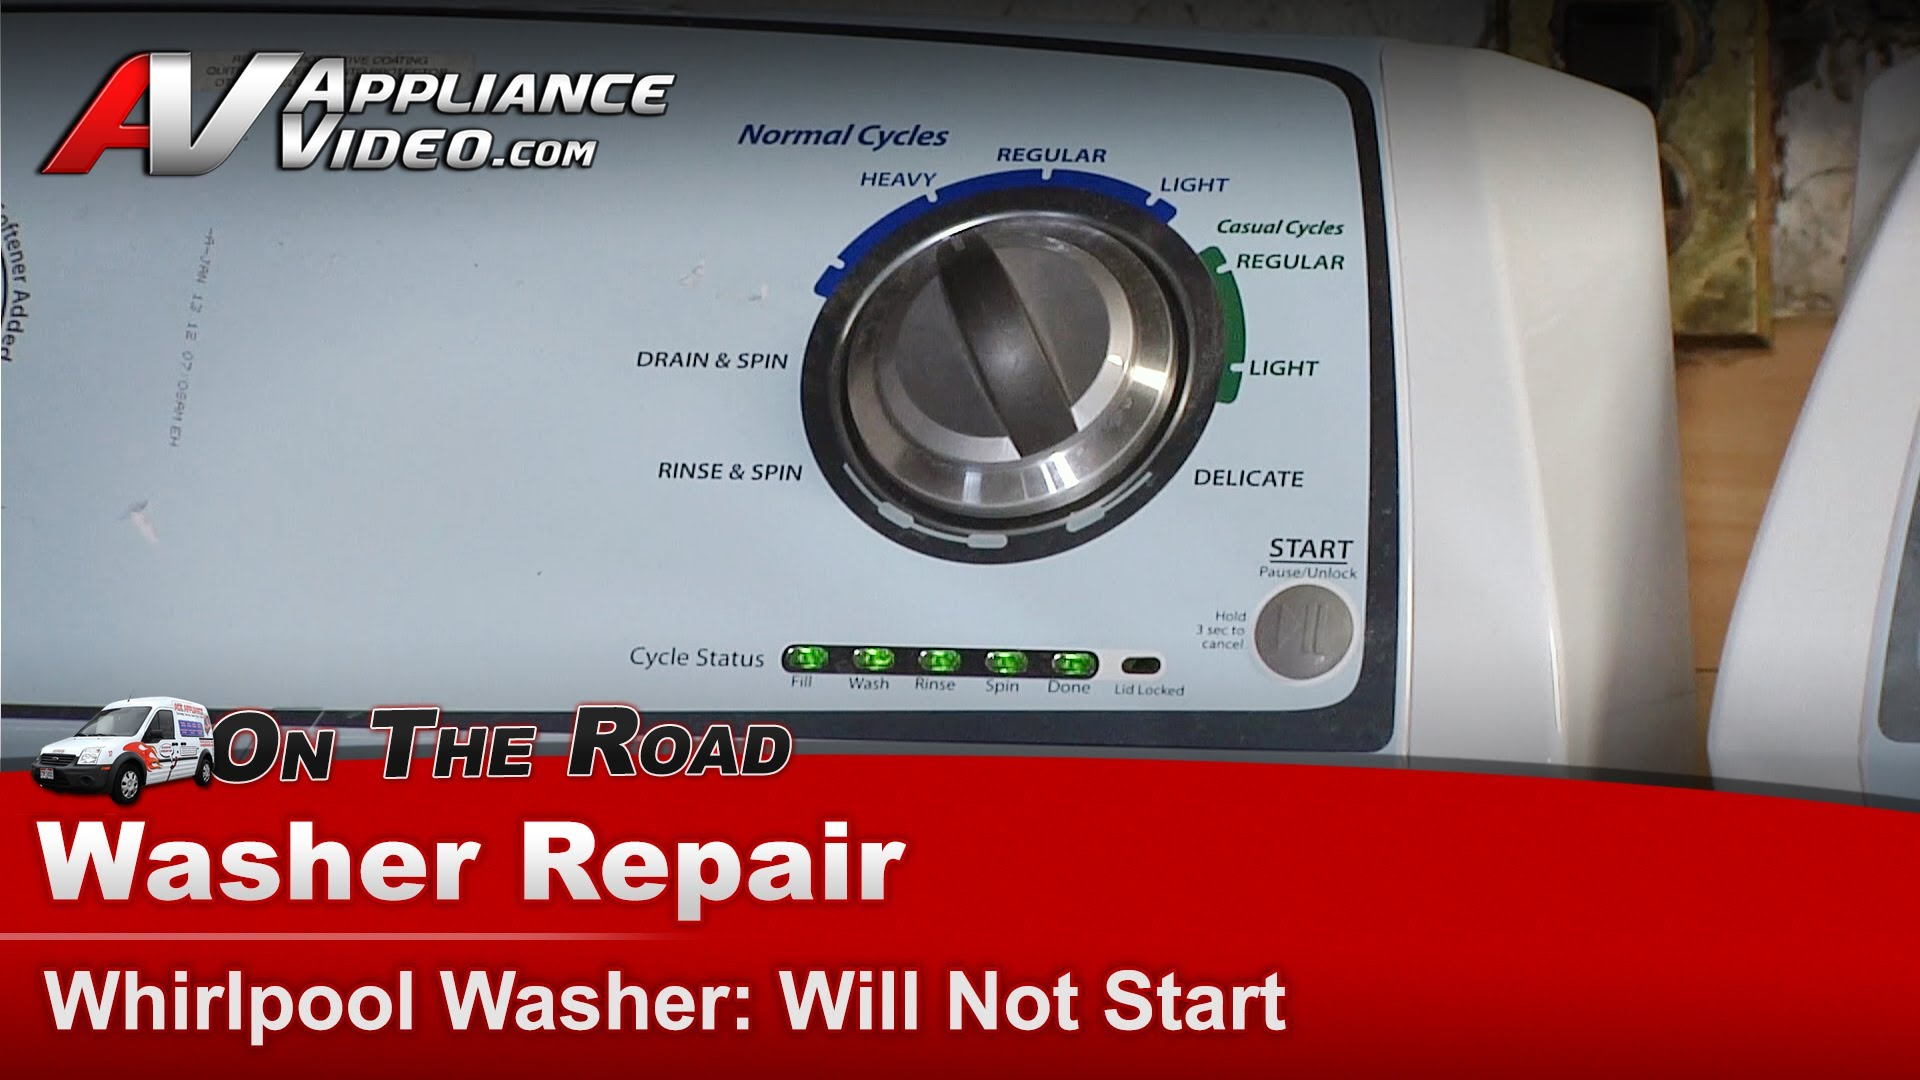 Whirlpool WTW4800XQ2 Washer Repair  Does not start  Appliance Video